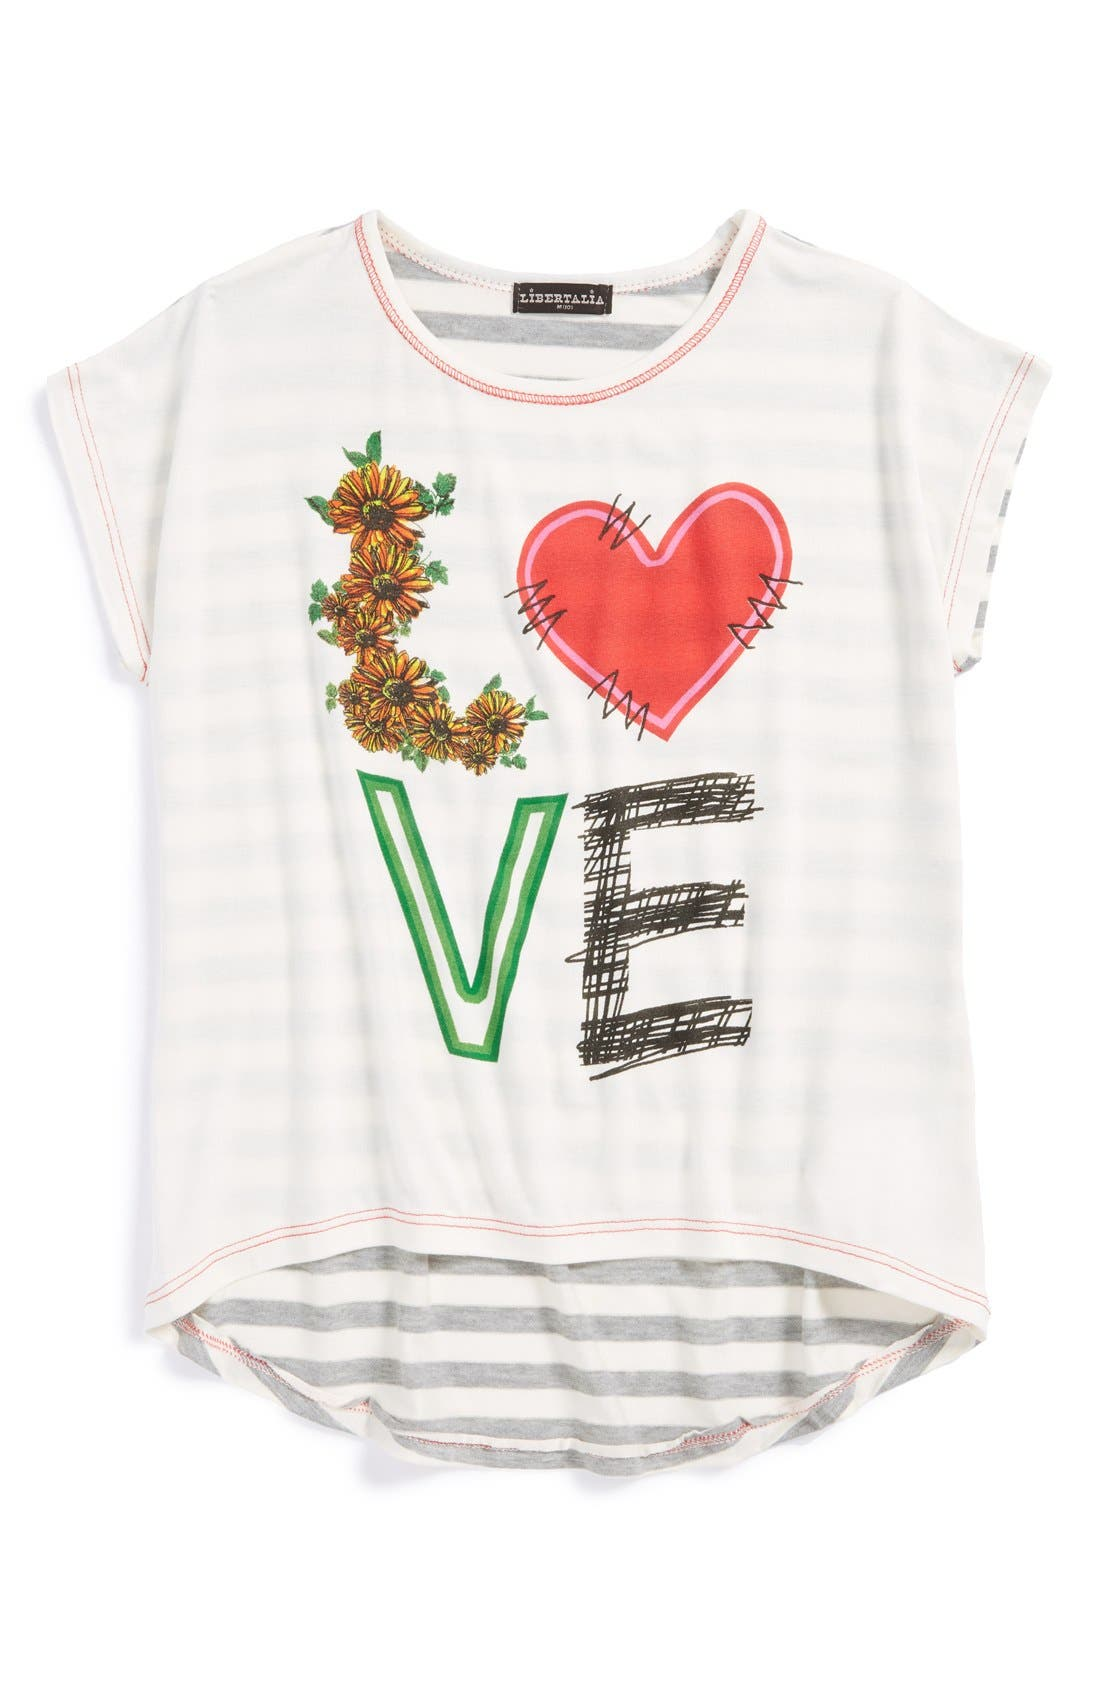 Alternate Image 1 Selected - Libertalia 'Love' High/Low Tee (Big Girls)